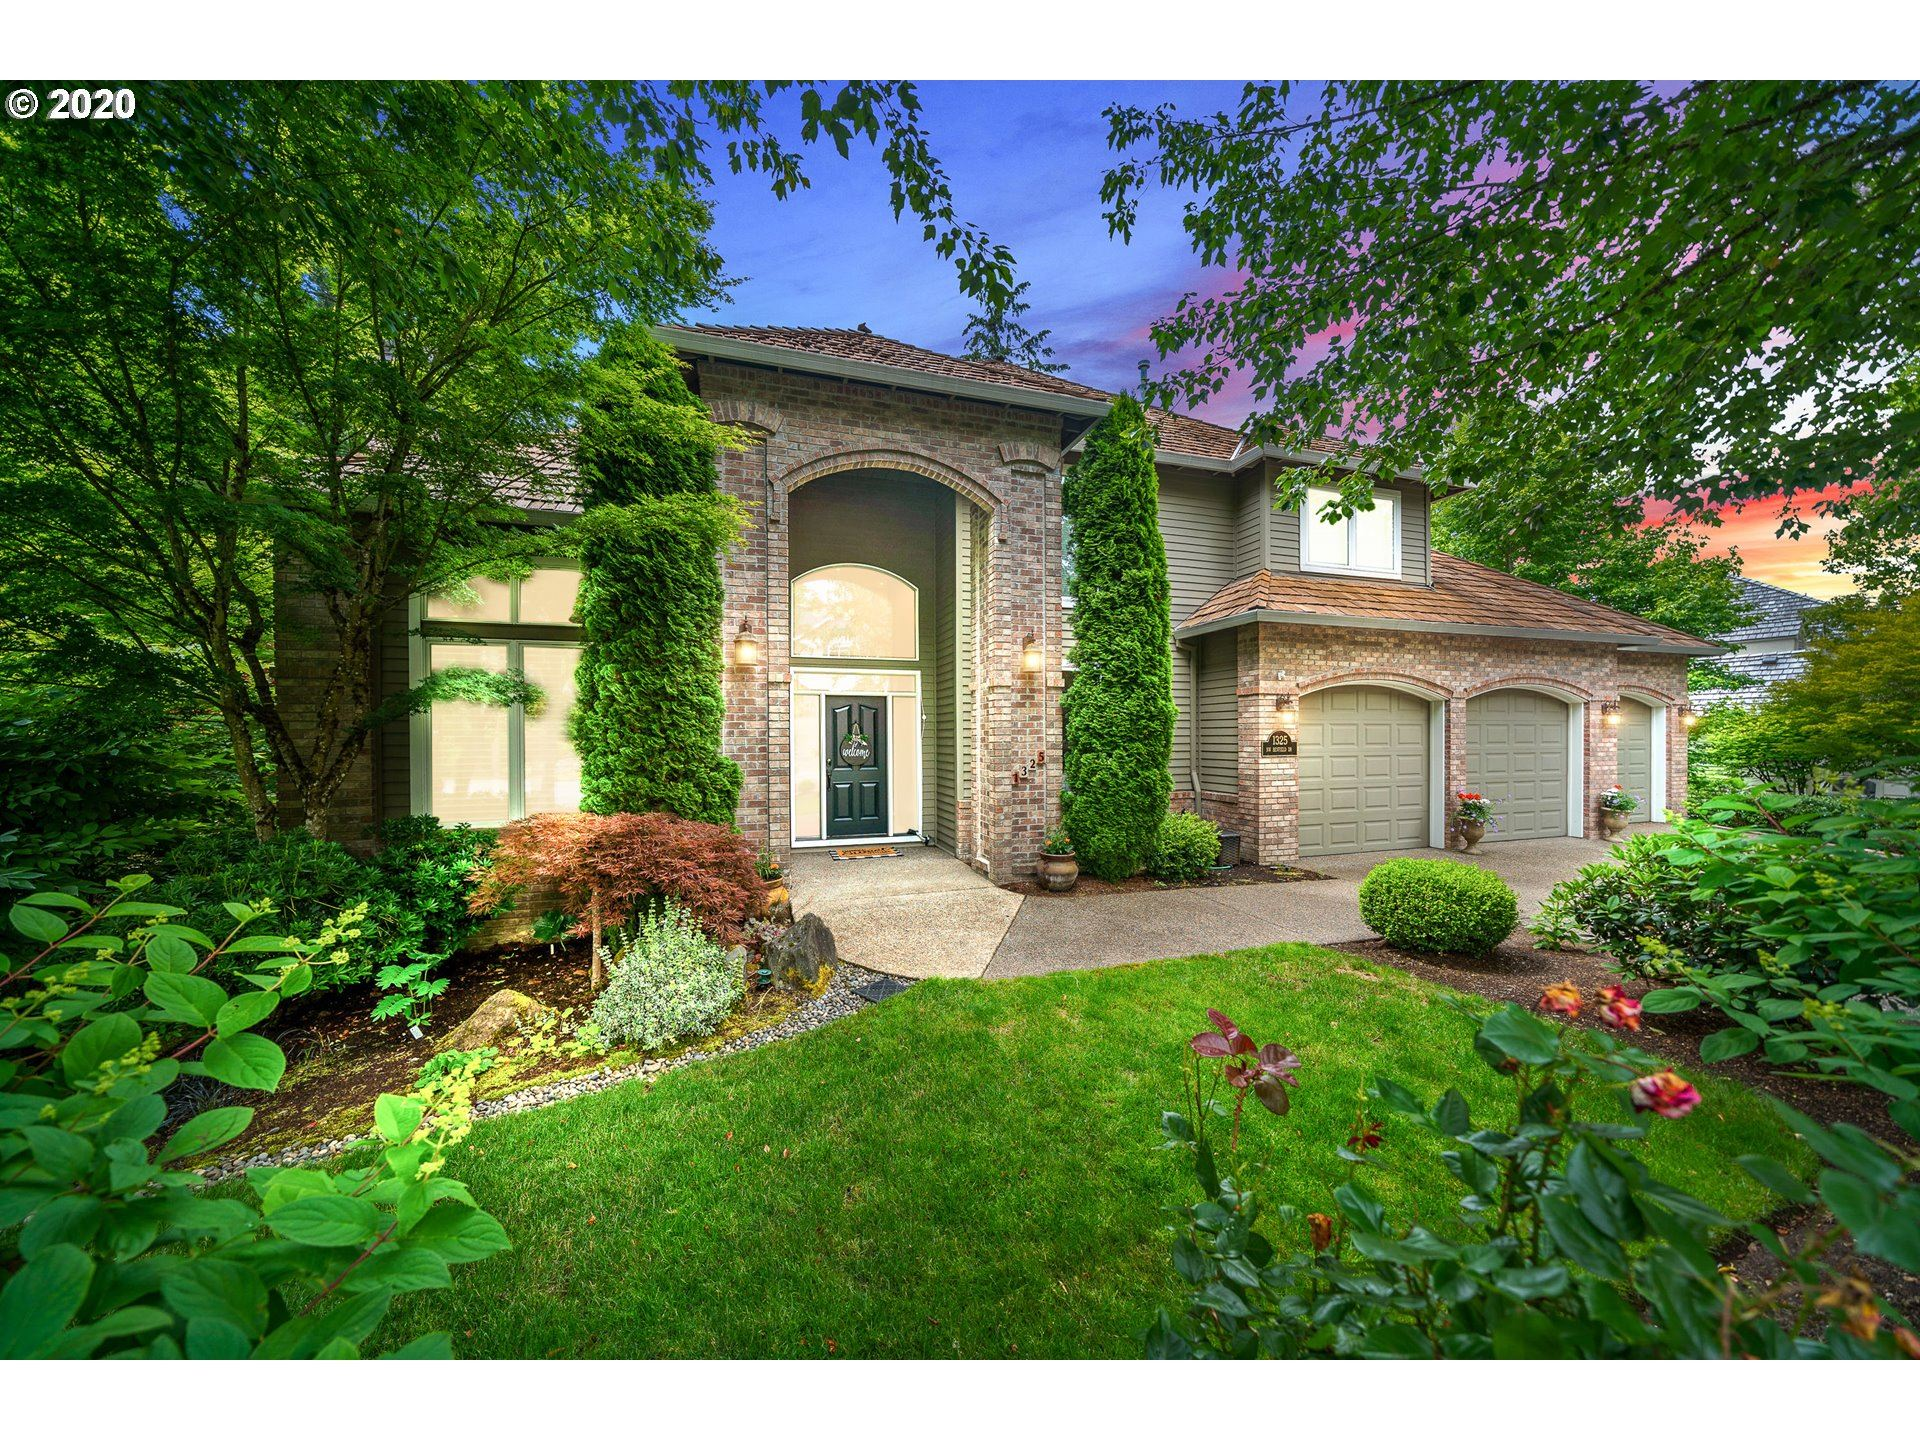 1325 NW BENFIELD DR, Portland, OR 97229 - MLS#: 20479107